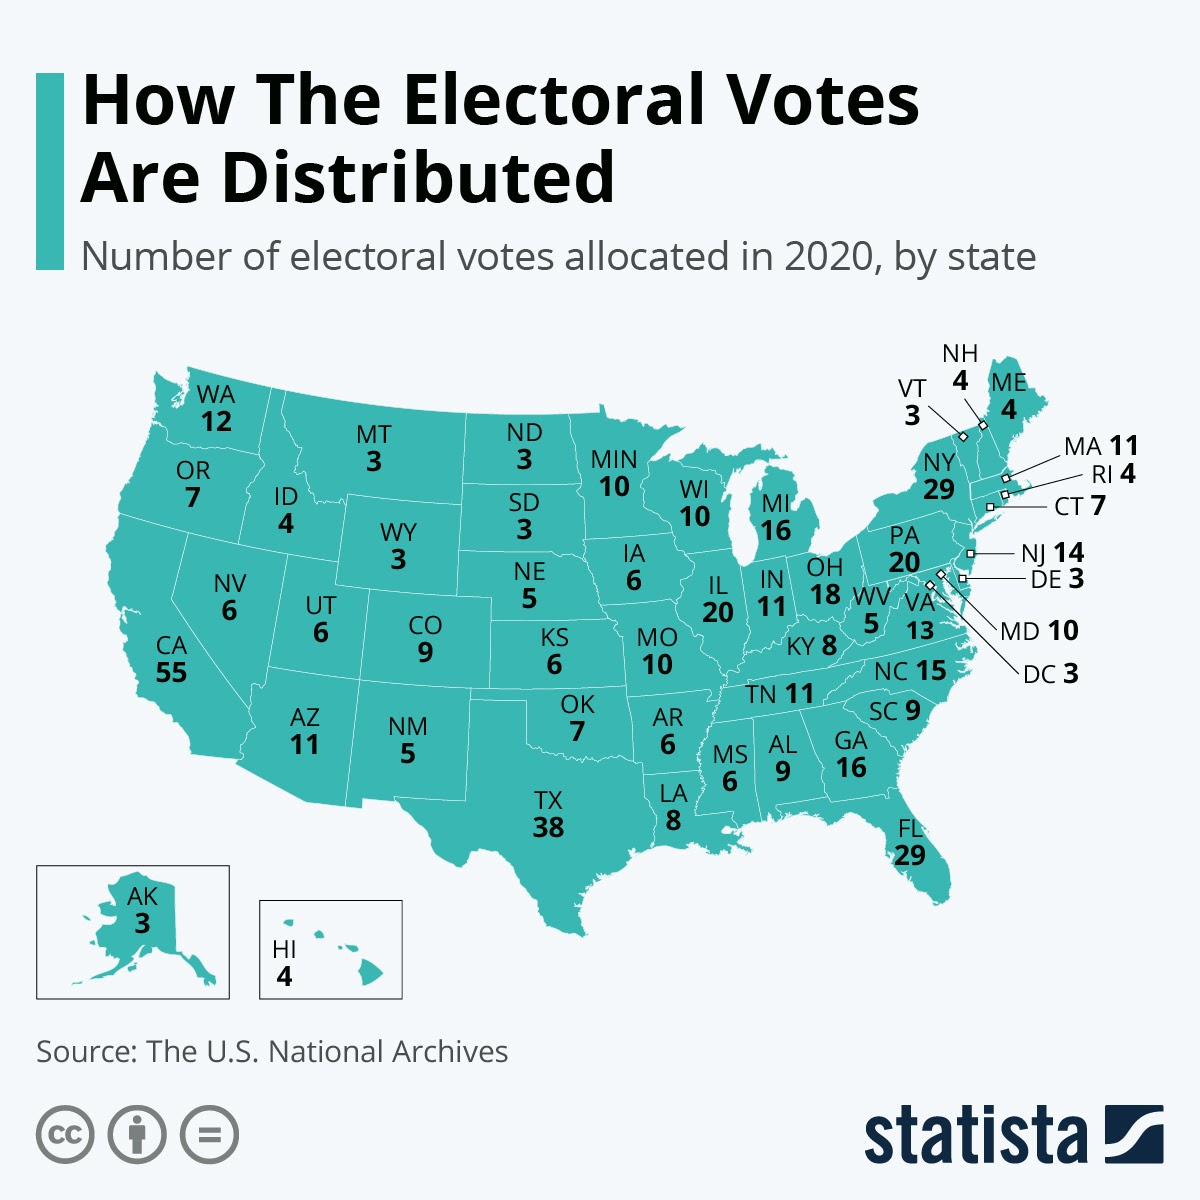 How The Electoral Votes Are Distributed #infographic